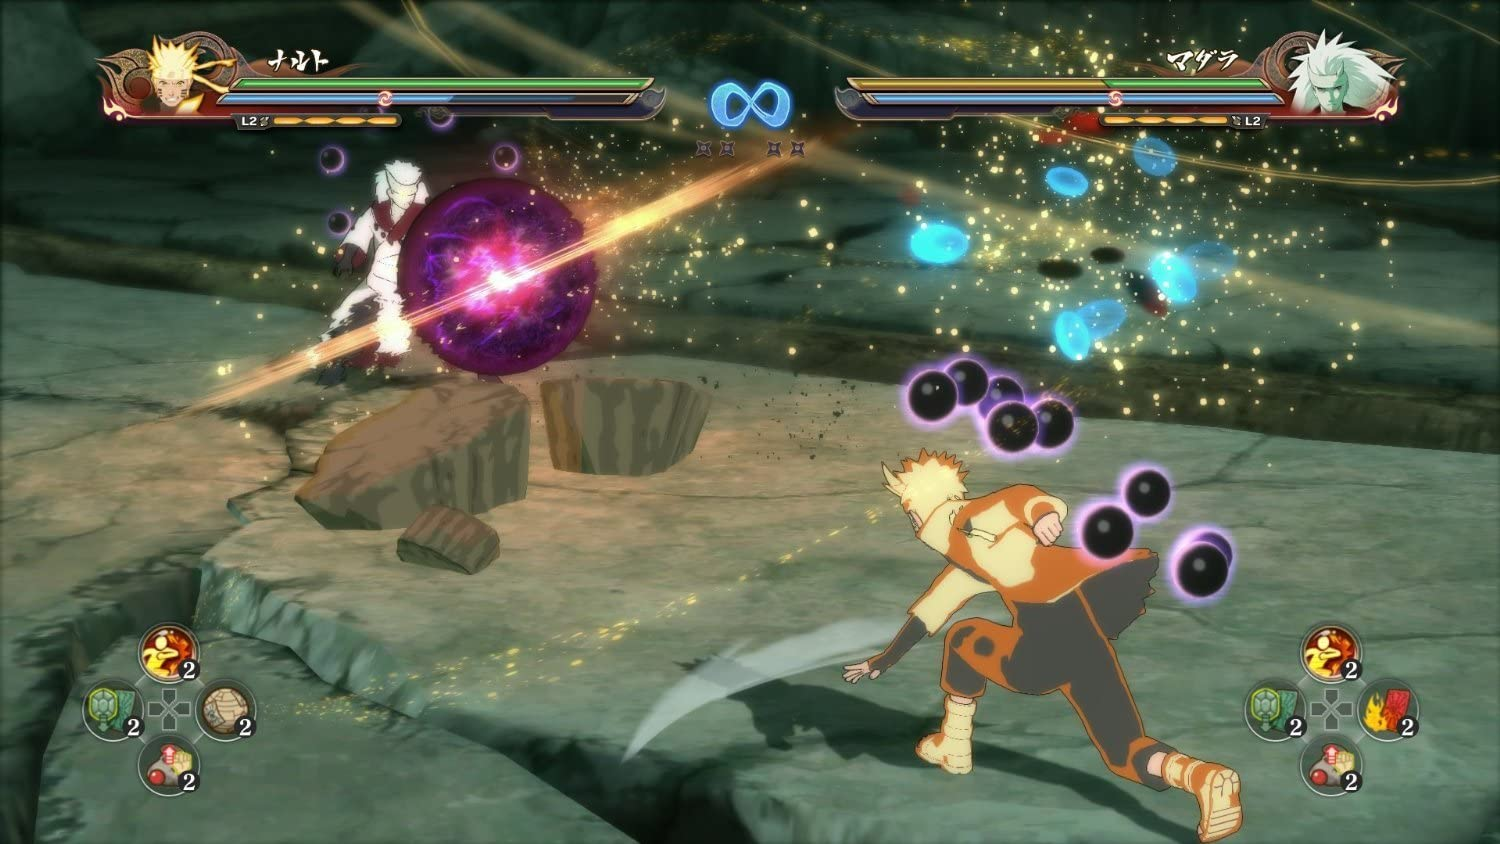 Amazon.com: PS4 NARUTO SHIPPUDEN: ULTIMATE NINJA STORM 4 (US ...